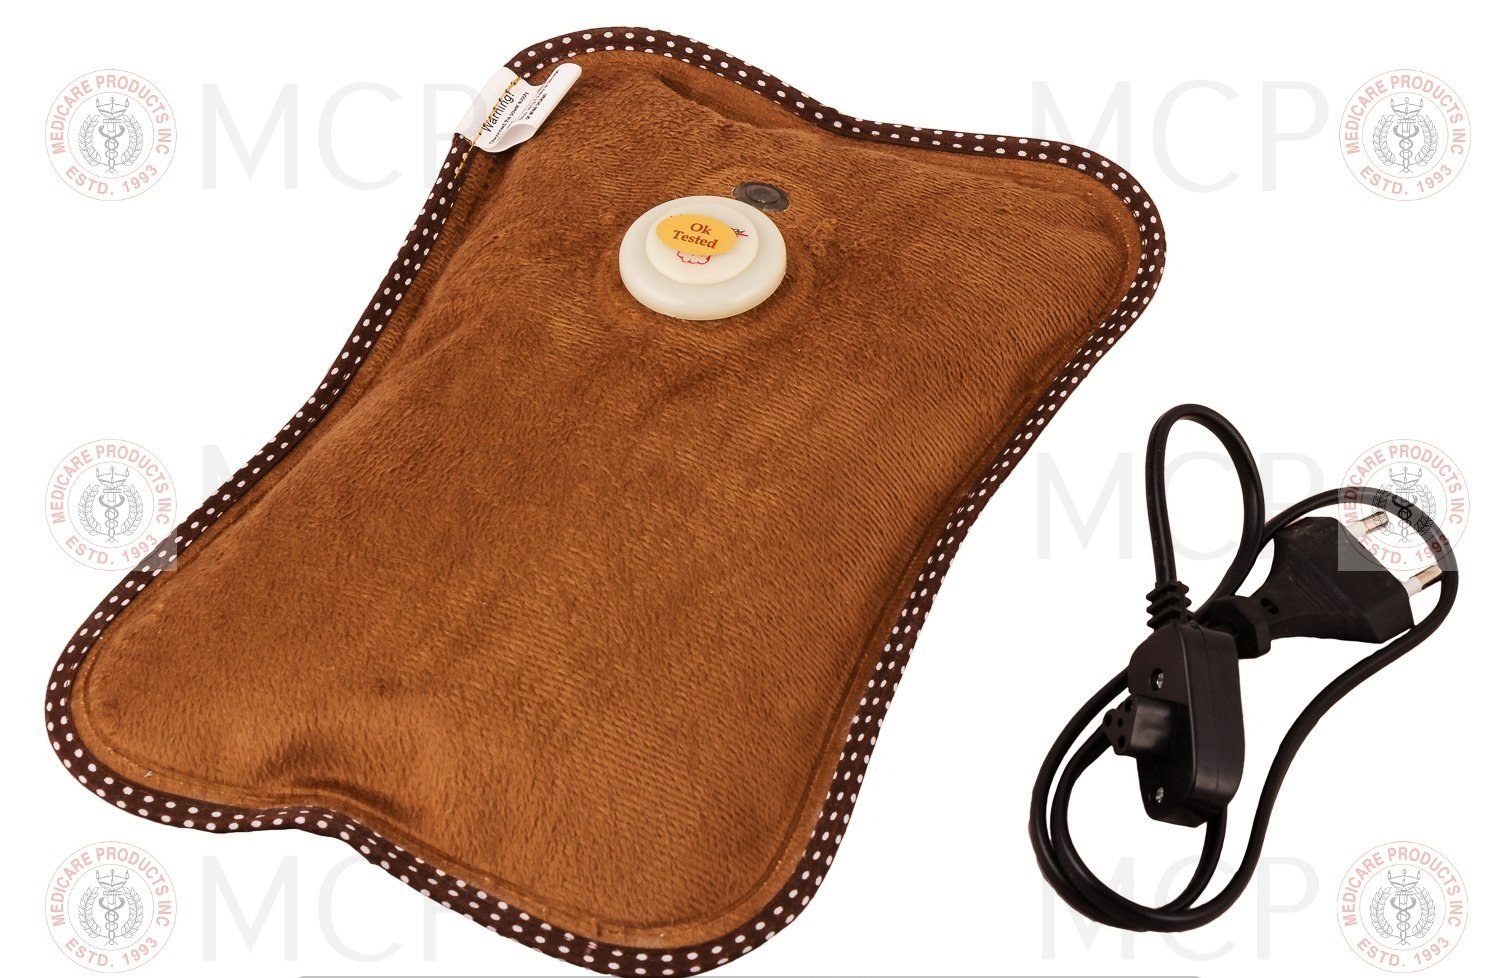 Electric Heat Bag Hot Gel Bottle Pouch Massager Warm for Winter Aches reliever Rectangle Shaped